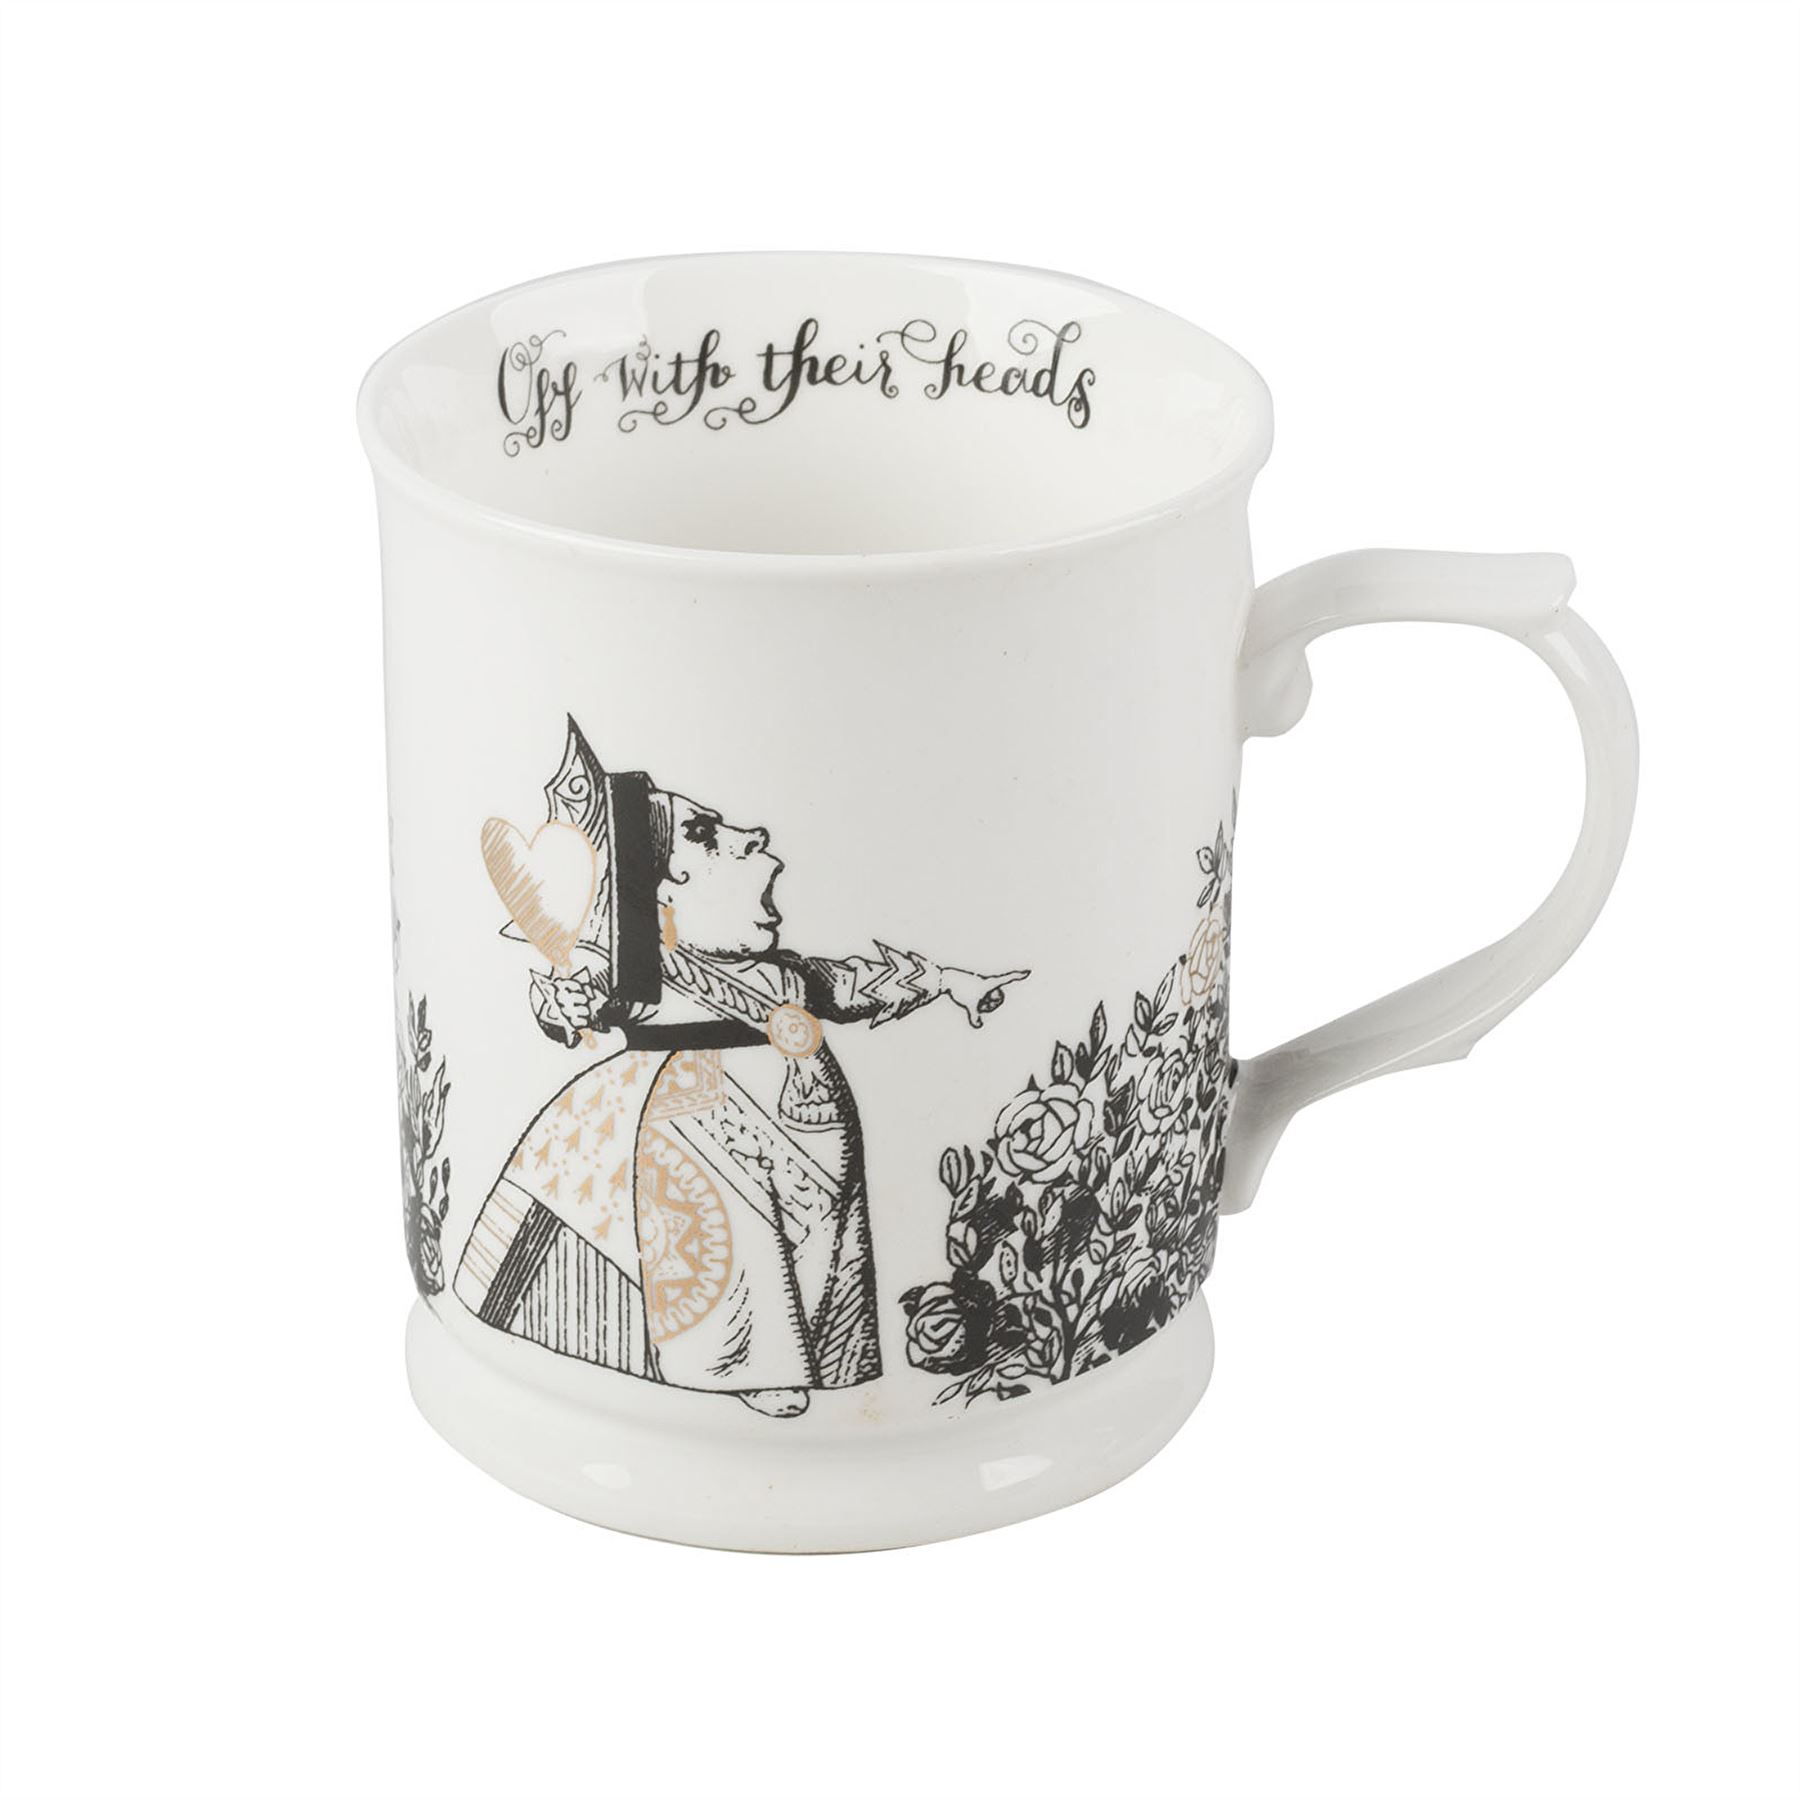 alice im wunderland krug tasse becher geschenk verpackt from the v a range ebay. Black Bedroom Furniture Sets. Home Design Ideas